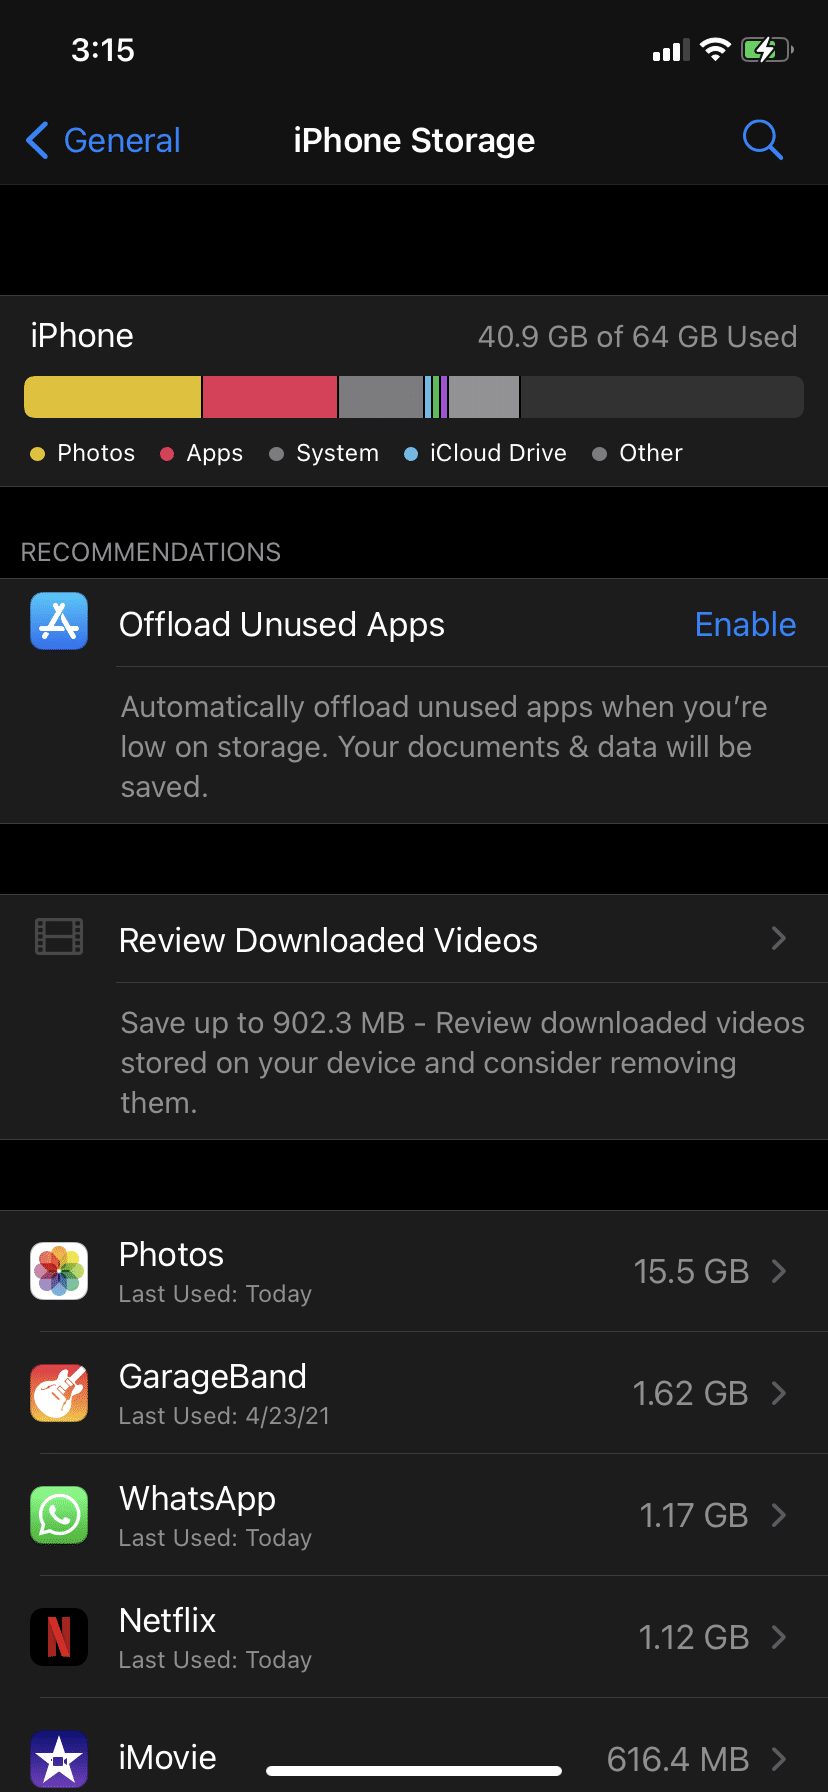 See a list of all applications installed, along with the storage space they are consuming